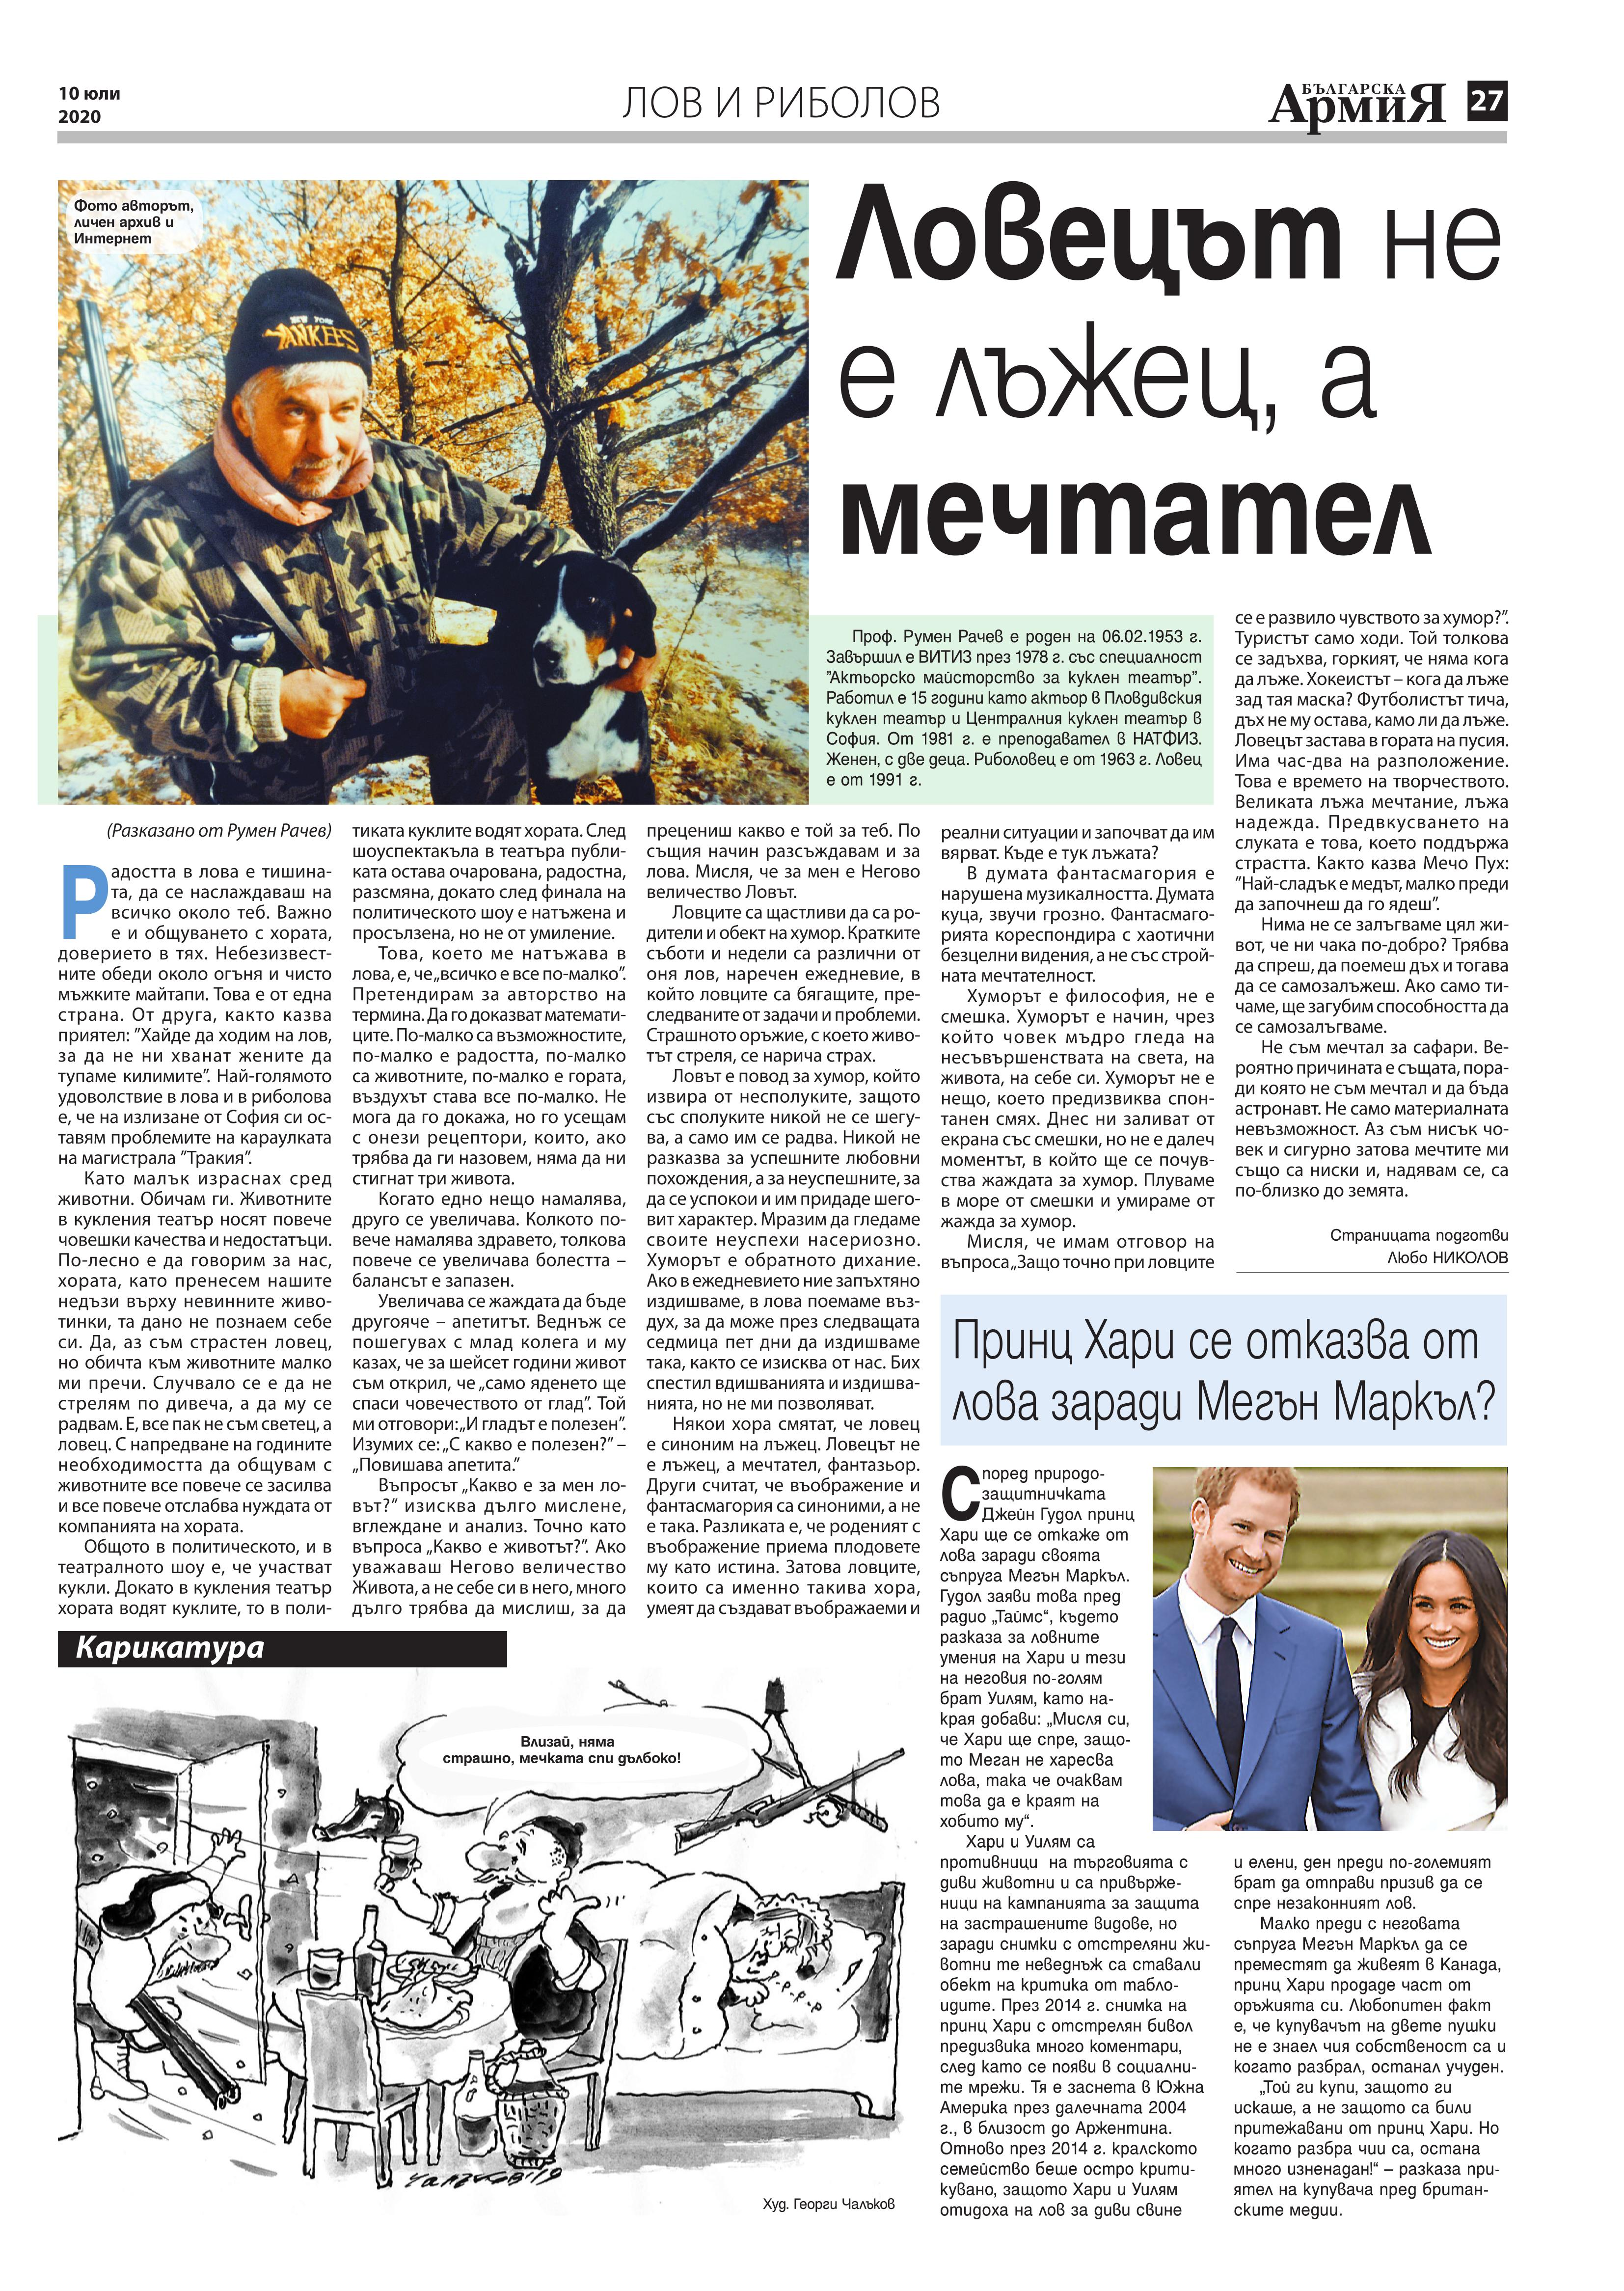 https://armymedia.bg/wp-content/uploads/2015/06/27.page1_-117.jpg